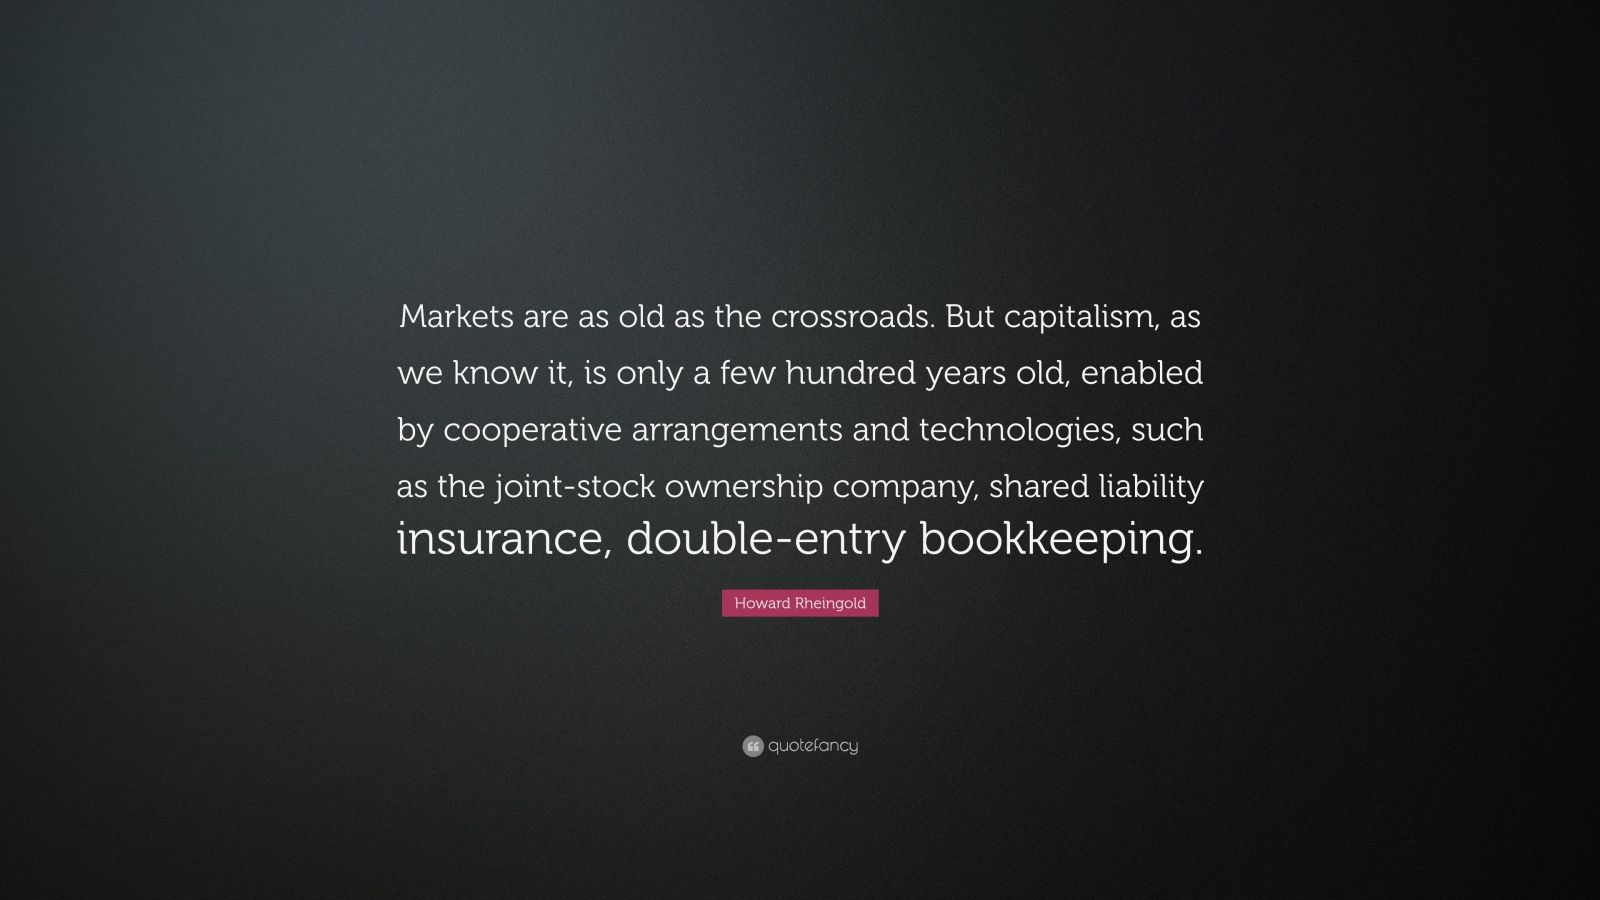 """Howard Rheingold Quote: """"Markets are as old as the crossroads. But capitalism, as we know it, is only a few hundred years old, enabled by cooperative arrangements and technologies, such as the joint-stock ownership company, shared liability insurance, double-entry bookkeeping."""""""